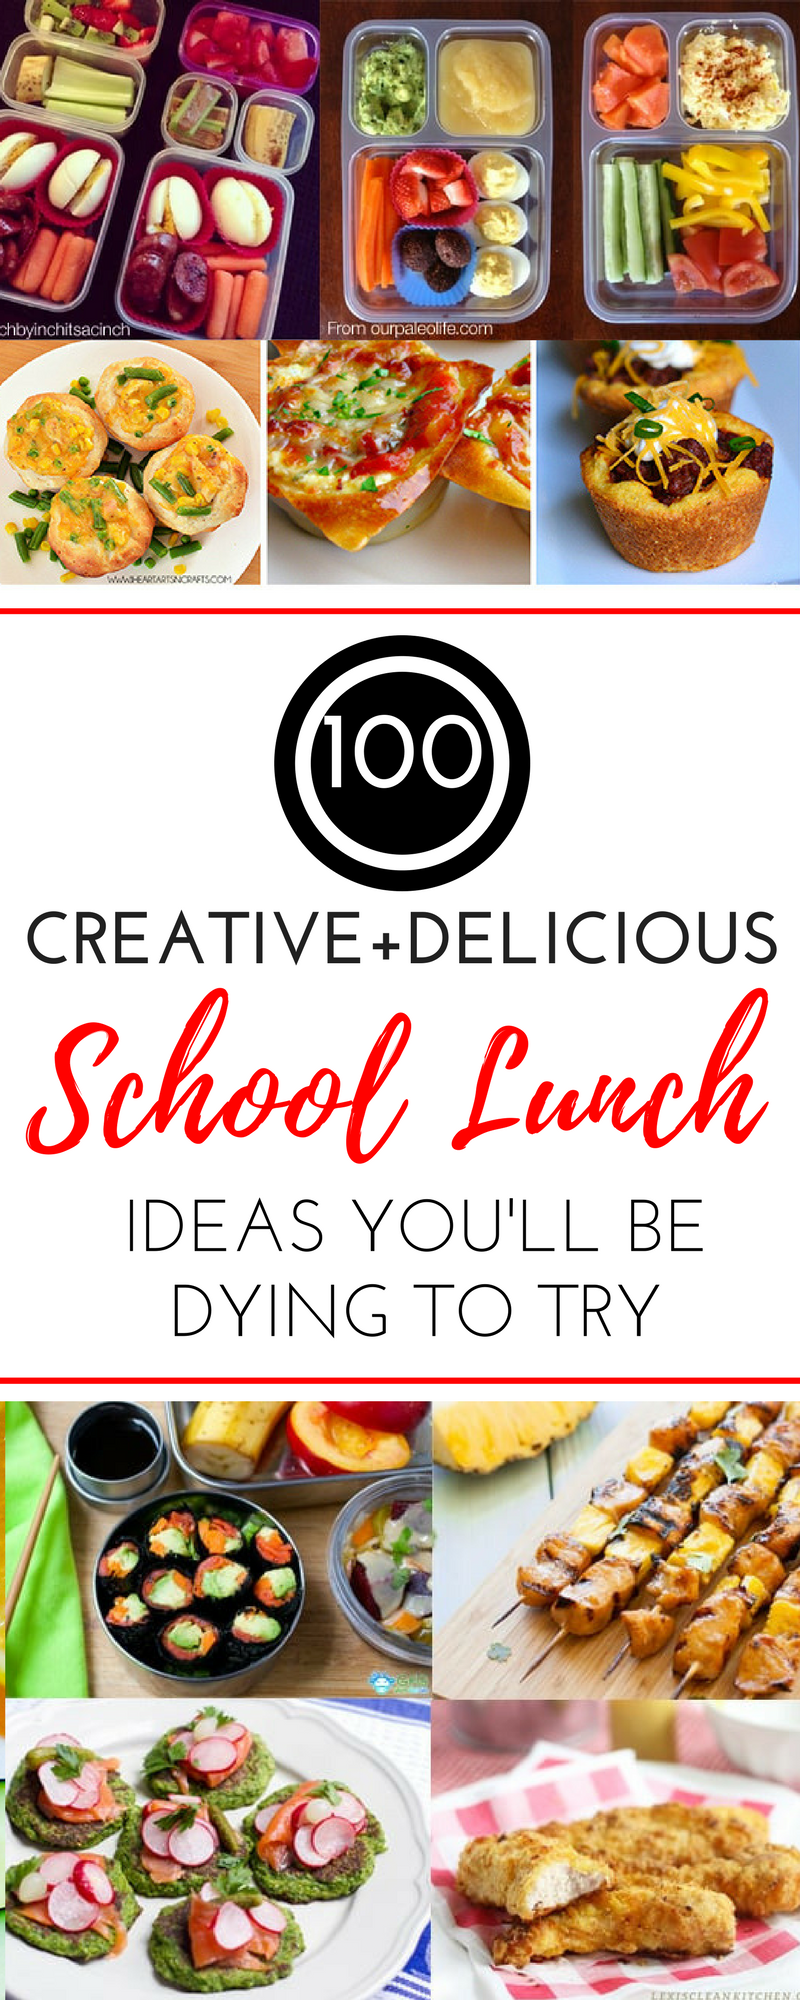 creative cold school lunch box ideas for picky eaters | meals for